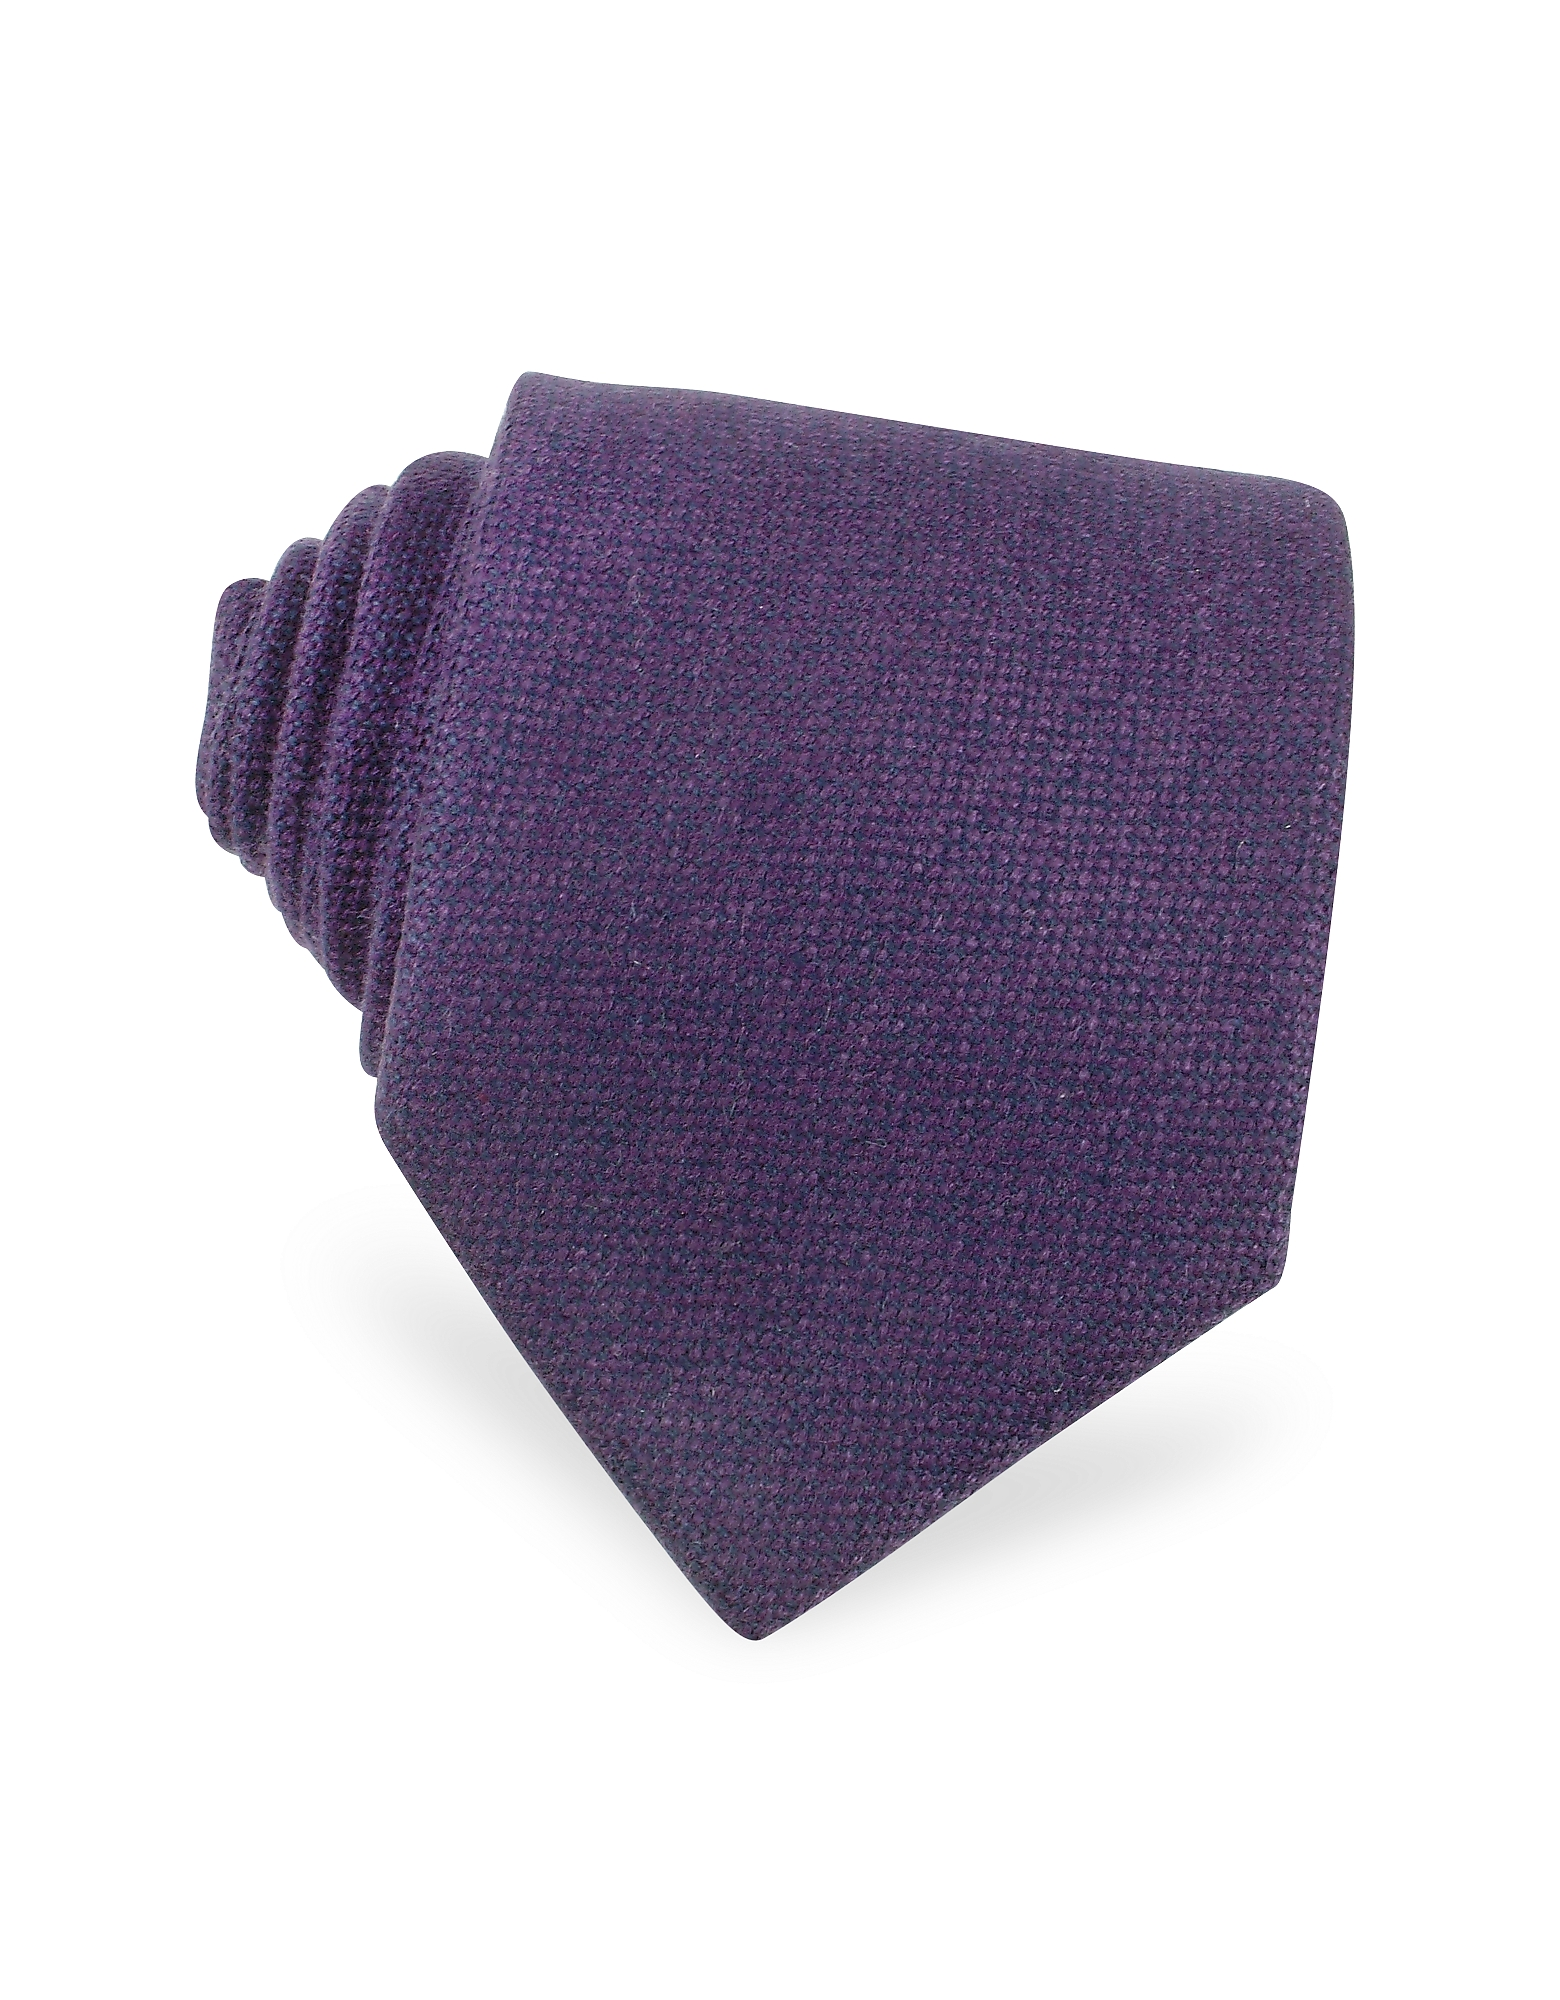 Forzieri Ties, Solid Purple Cashmere Extra-Long Tie